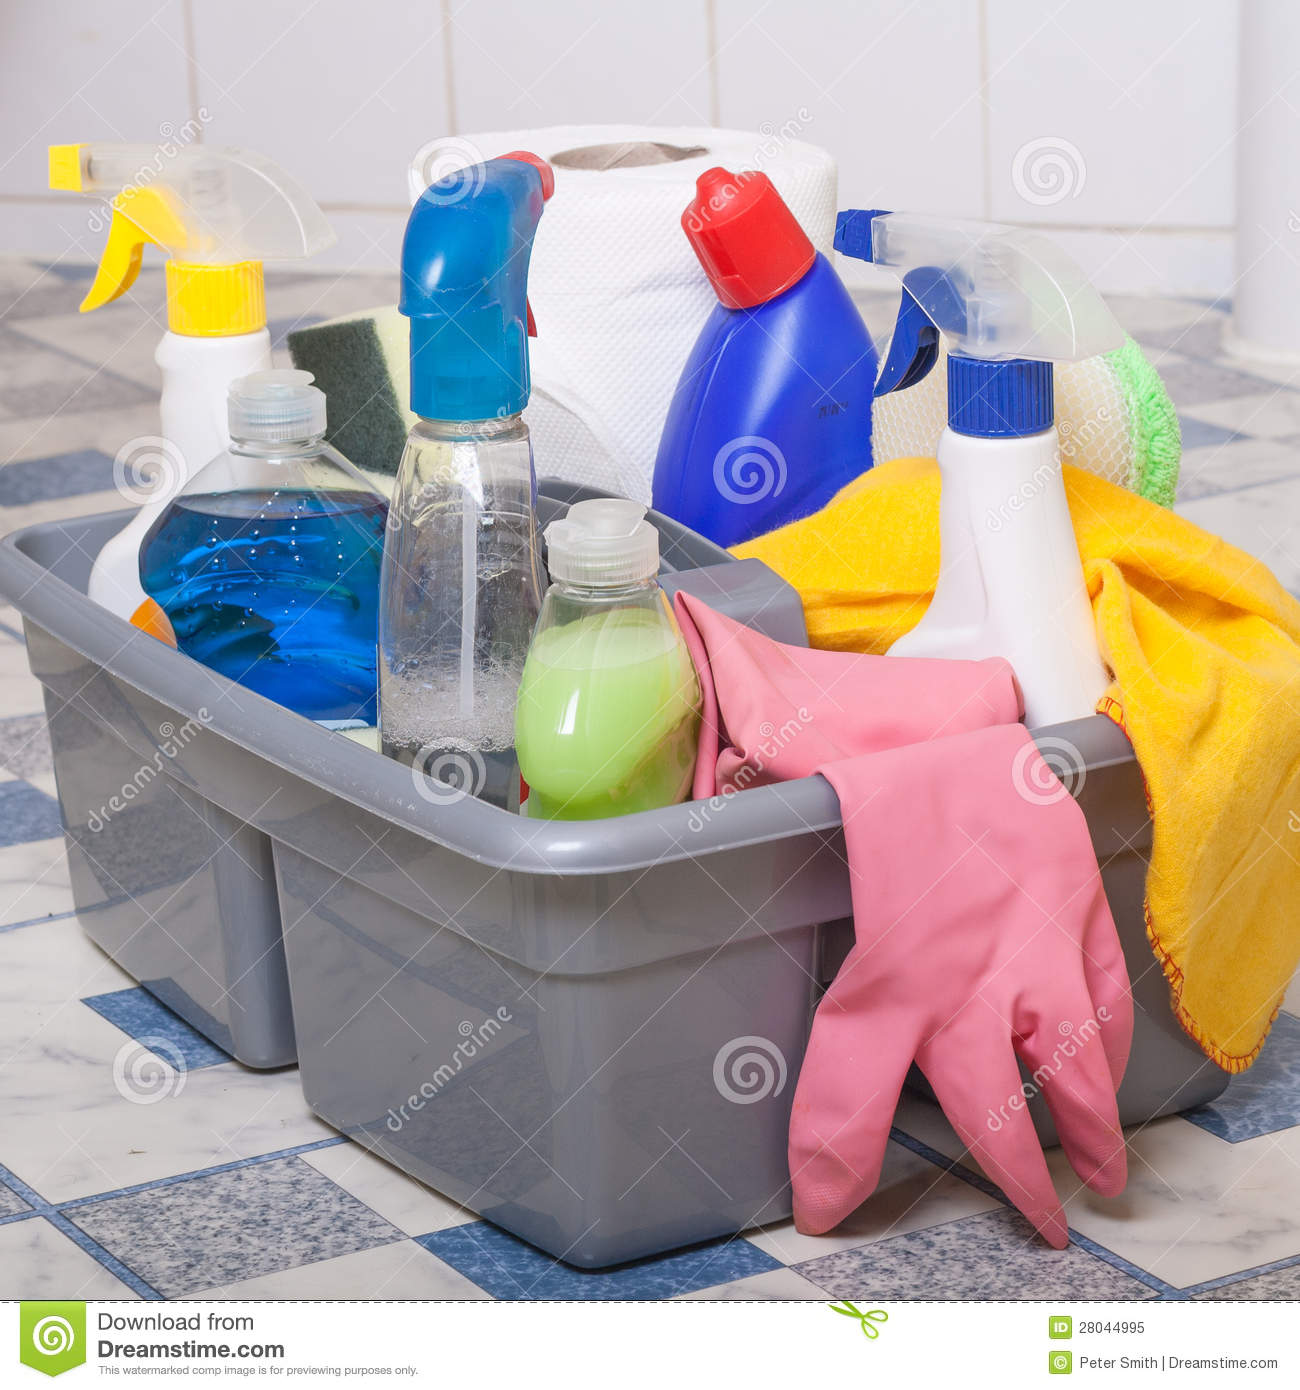 Kitchen Cleaning: Cleaning Bathroom Clean Kitchen Royalty Free Stock Photo